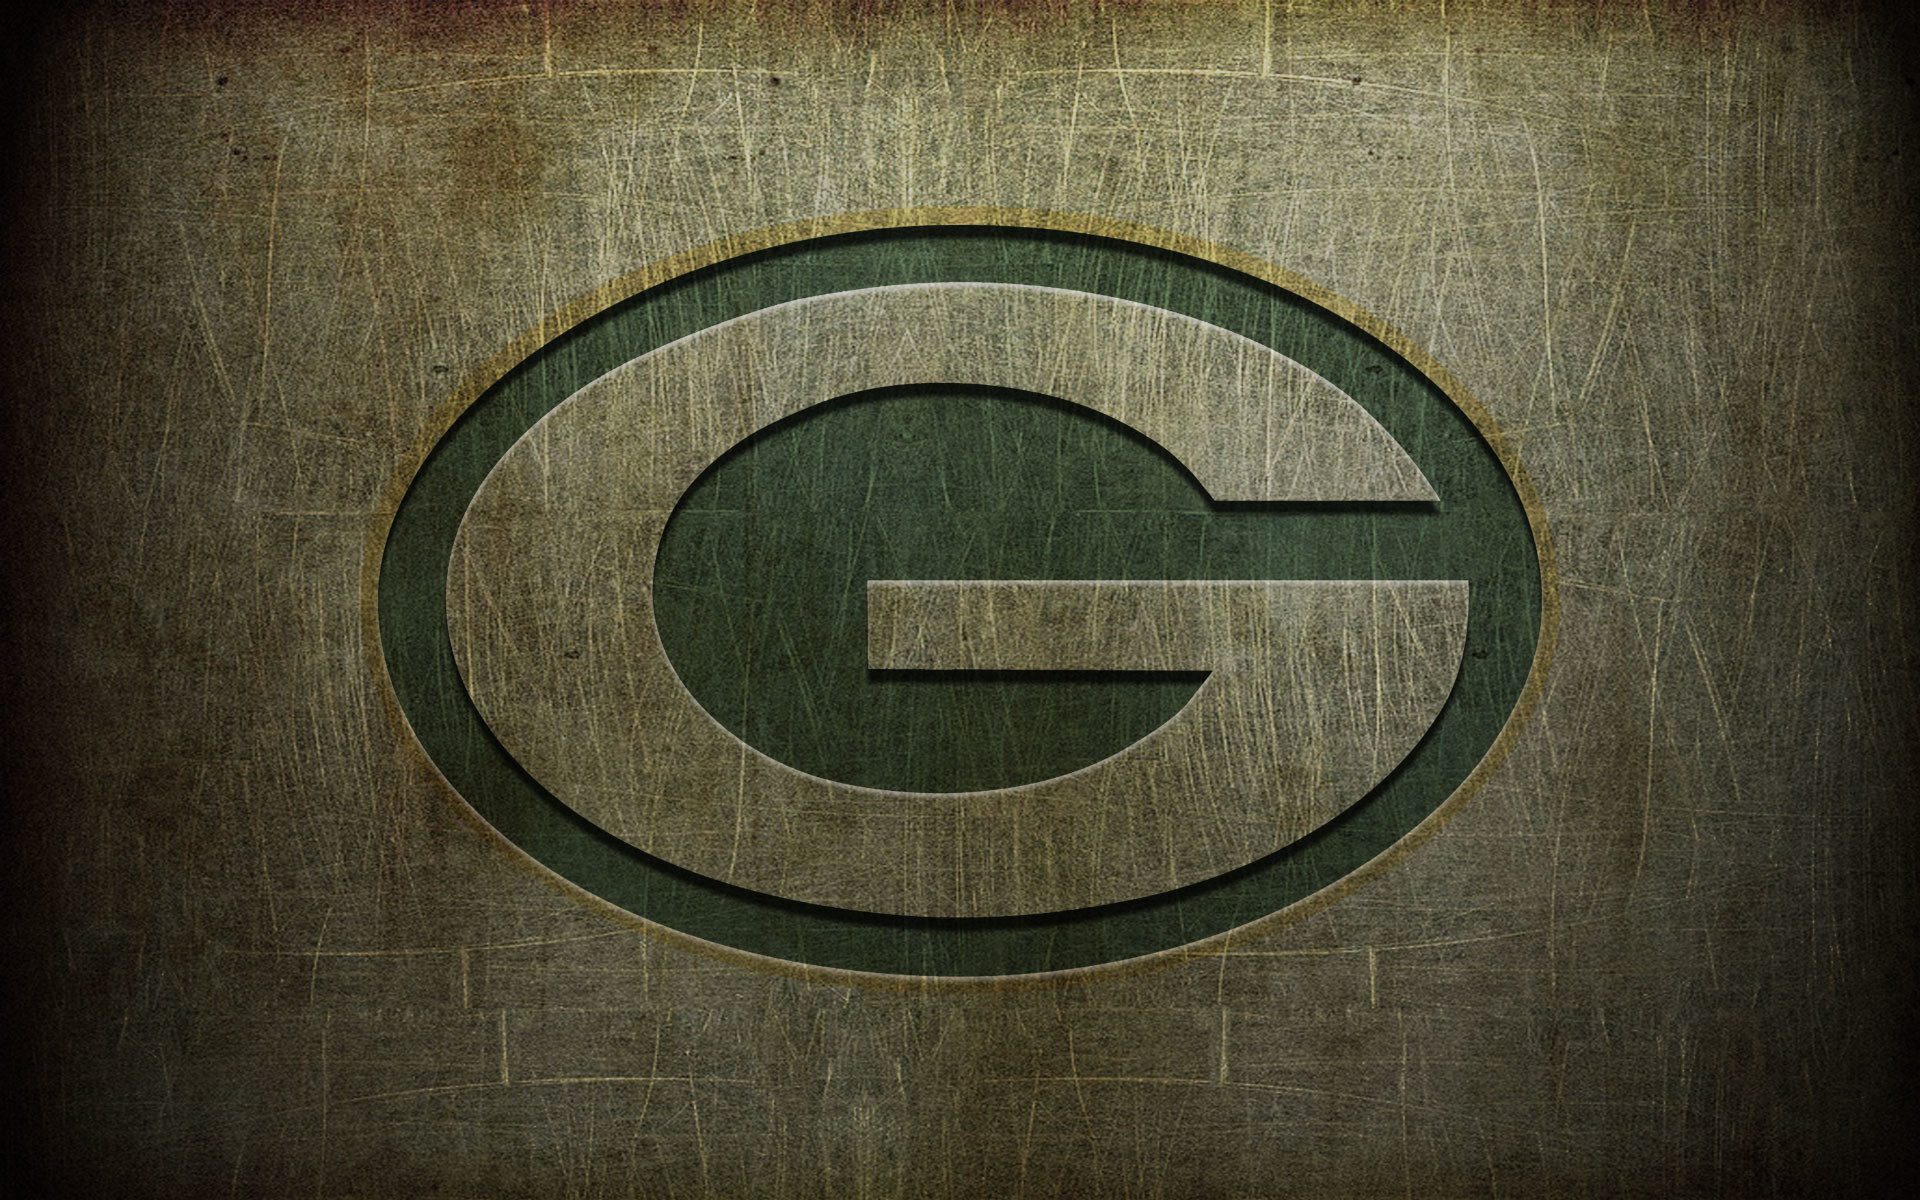 Green Bay Packers background | Green Bay Packers wallpapers